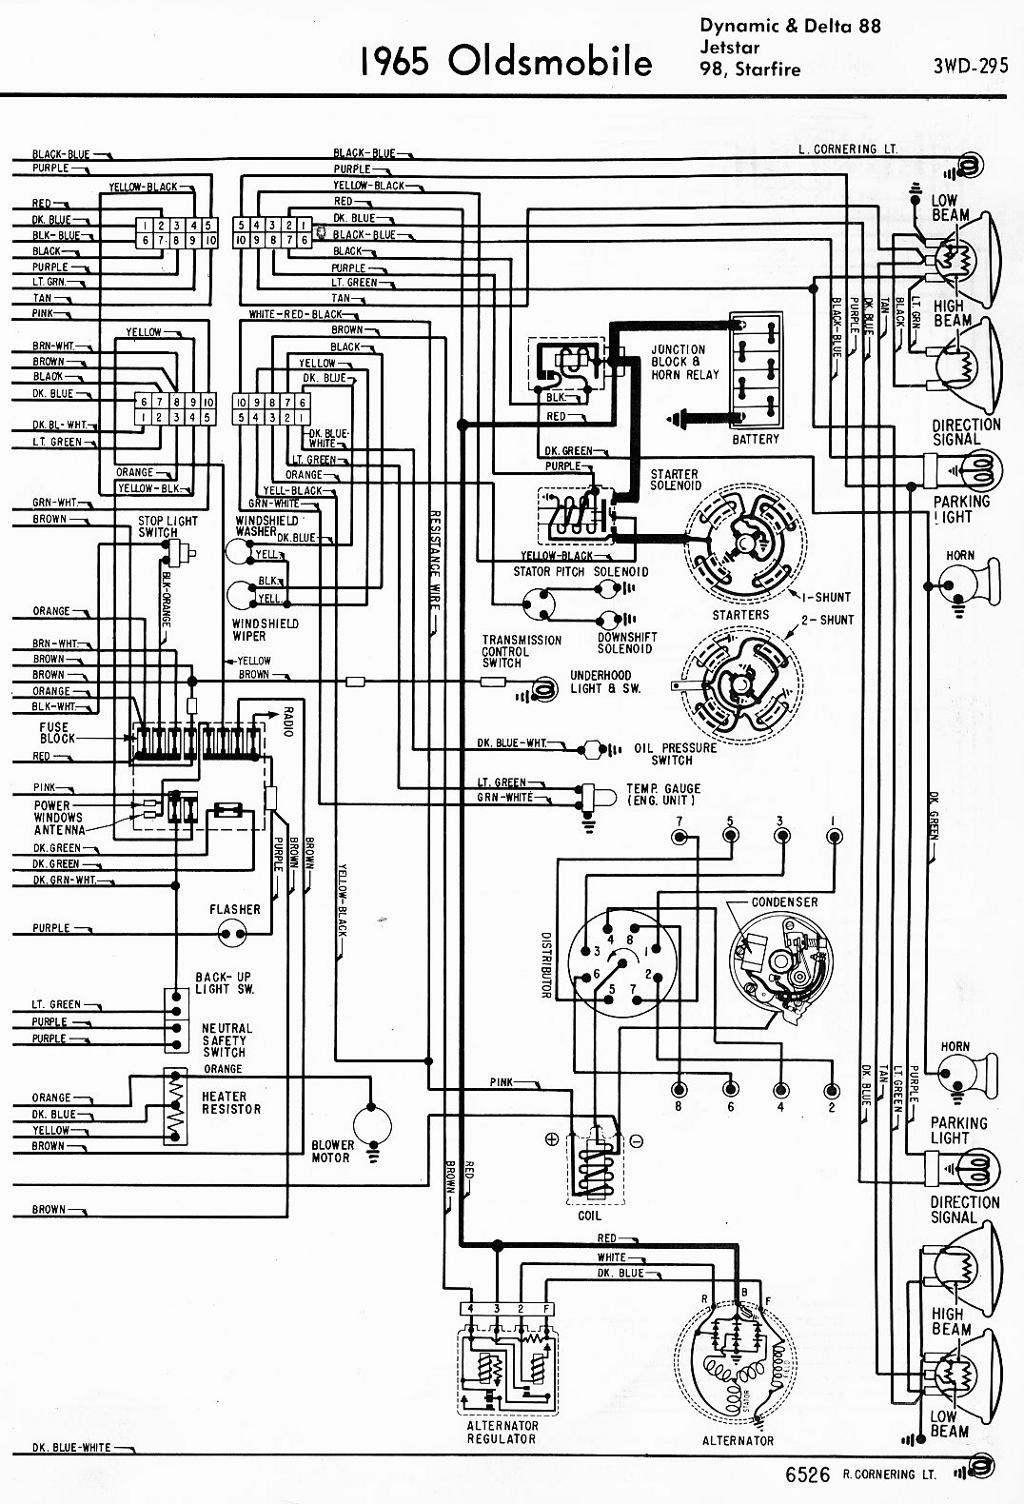 1972 oldsmobile cutlass wiring diagram 16 1 spikeballclubkoeln de  \u20221949 oldsmobile wiring diagram furthermore 1986